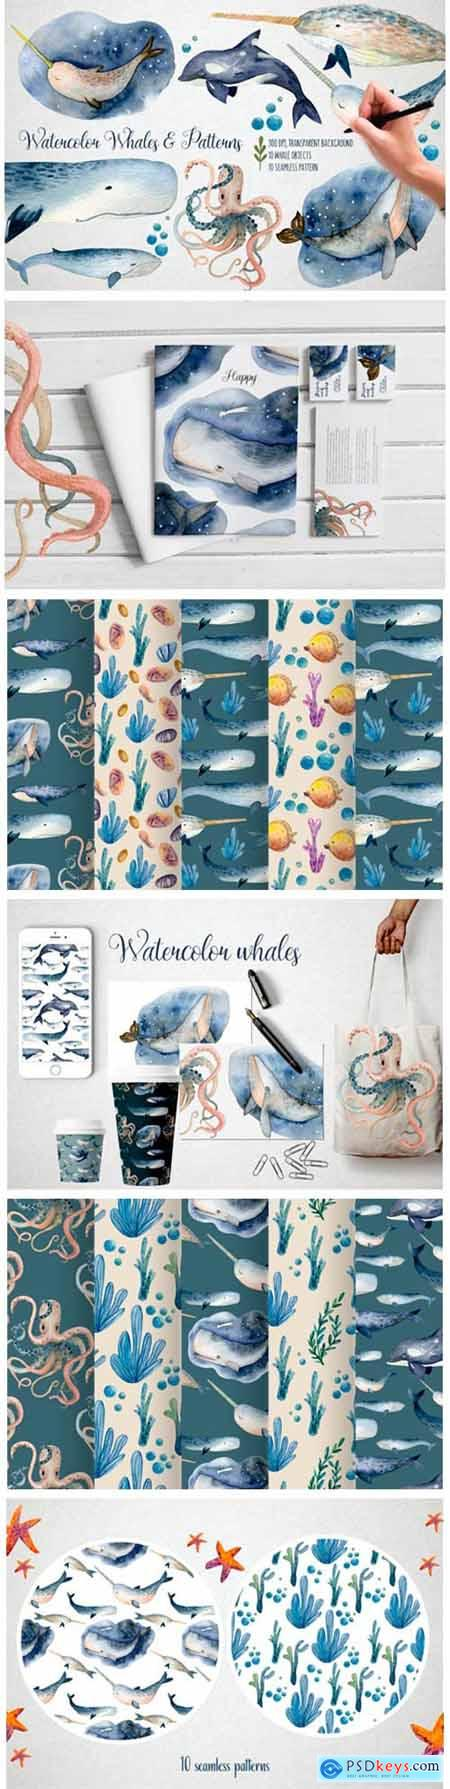 Watercolor Whales & Patterns 5872171